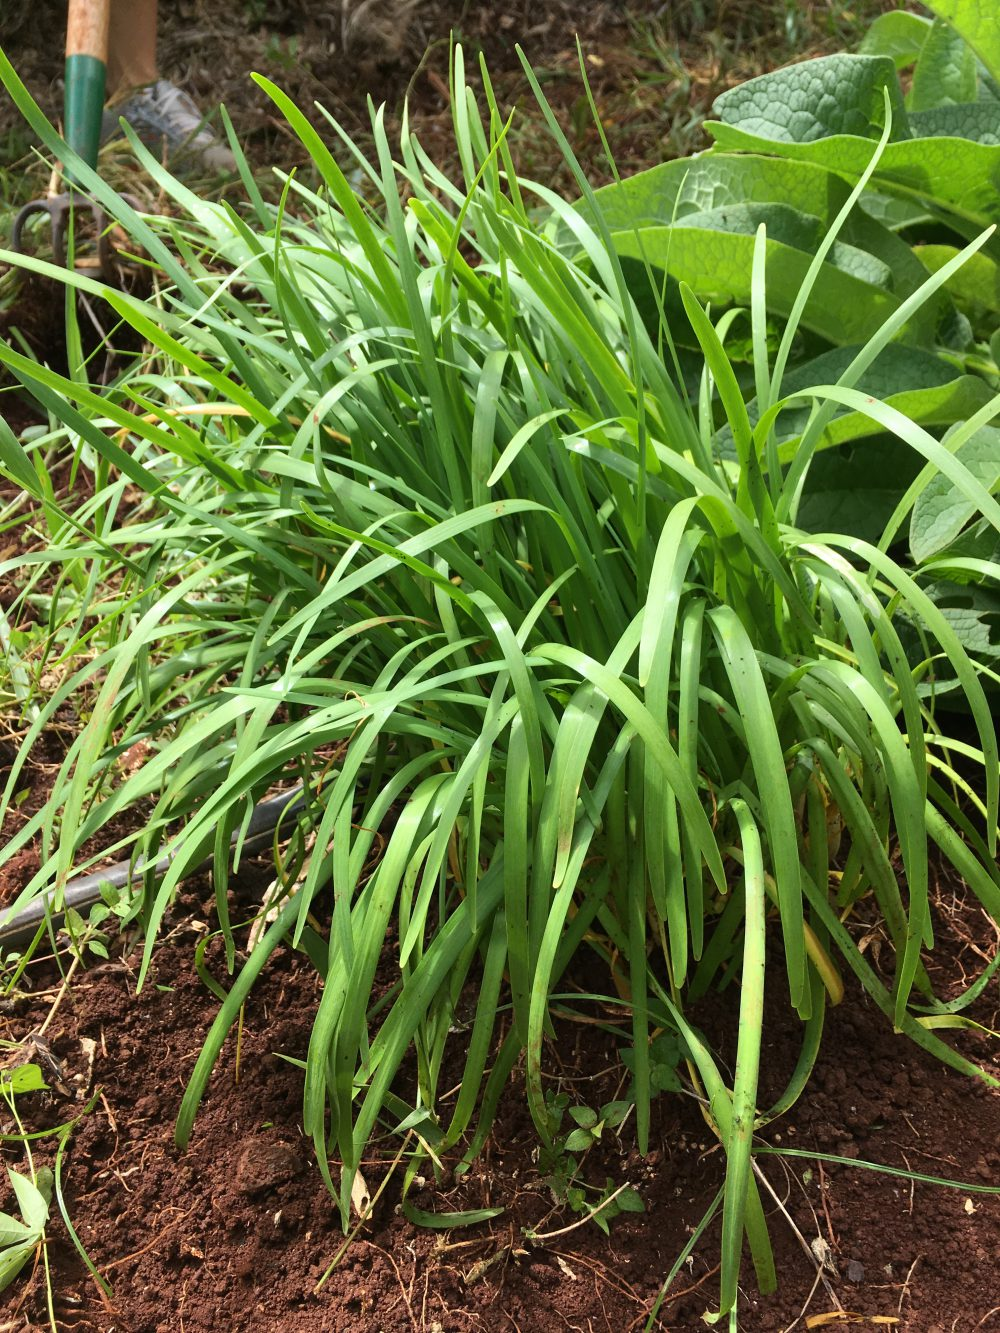 Some green onions